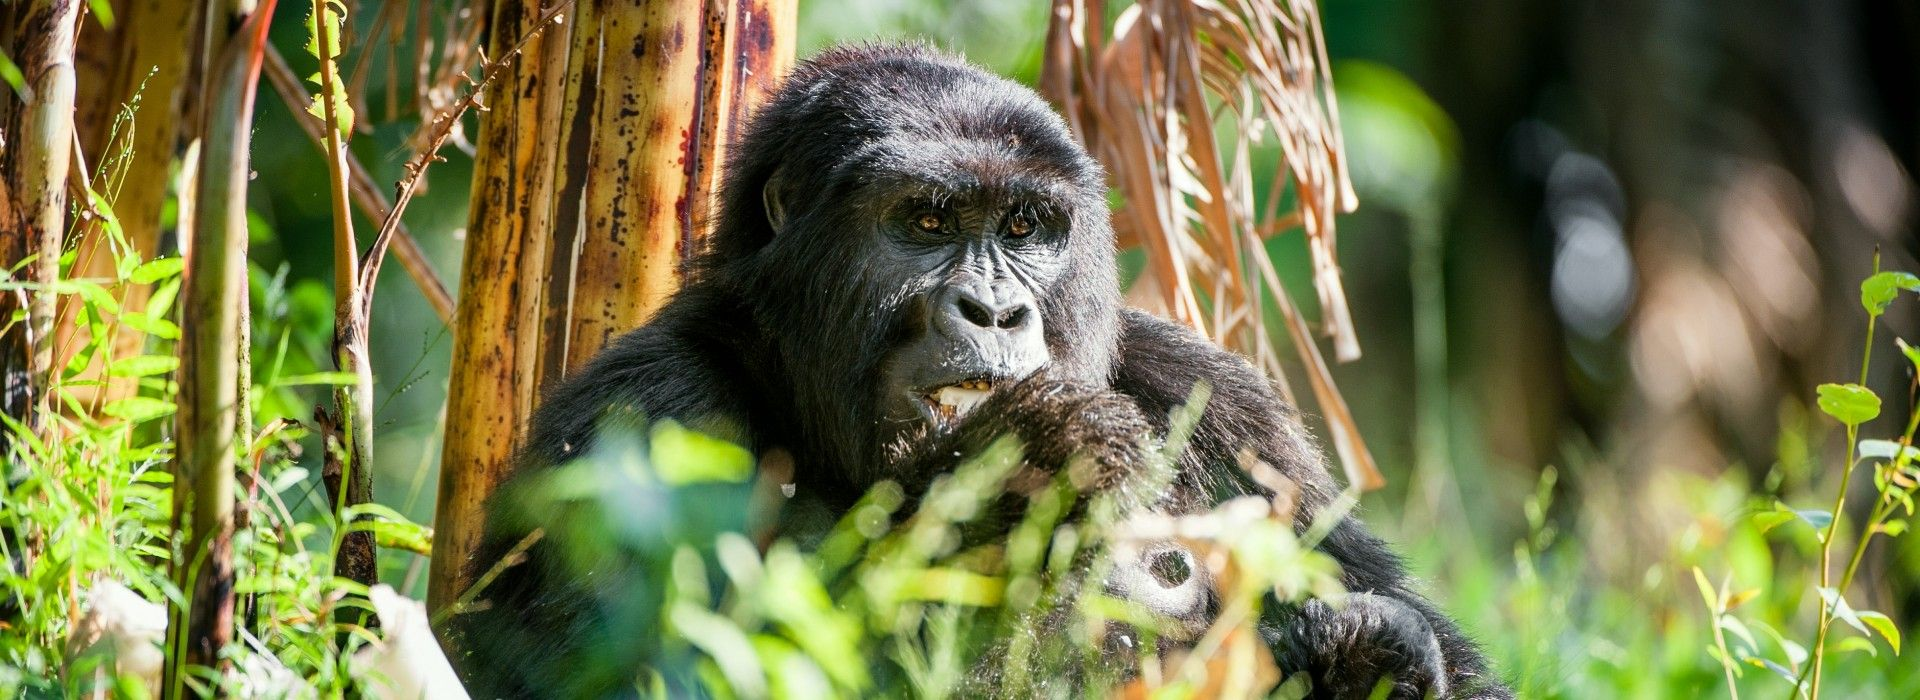 Gorilla and chimpanzee tracking Tours in Bwindi Impenetrable National Park